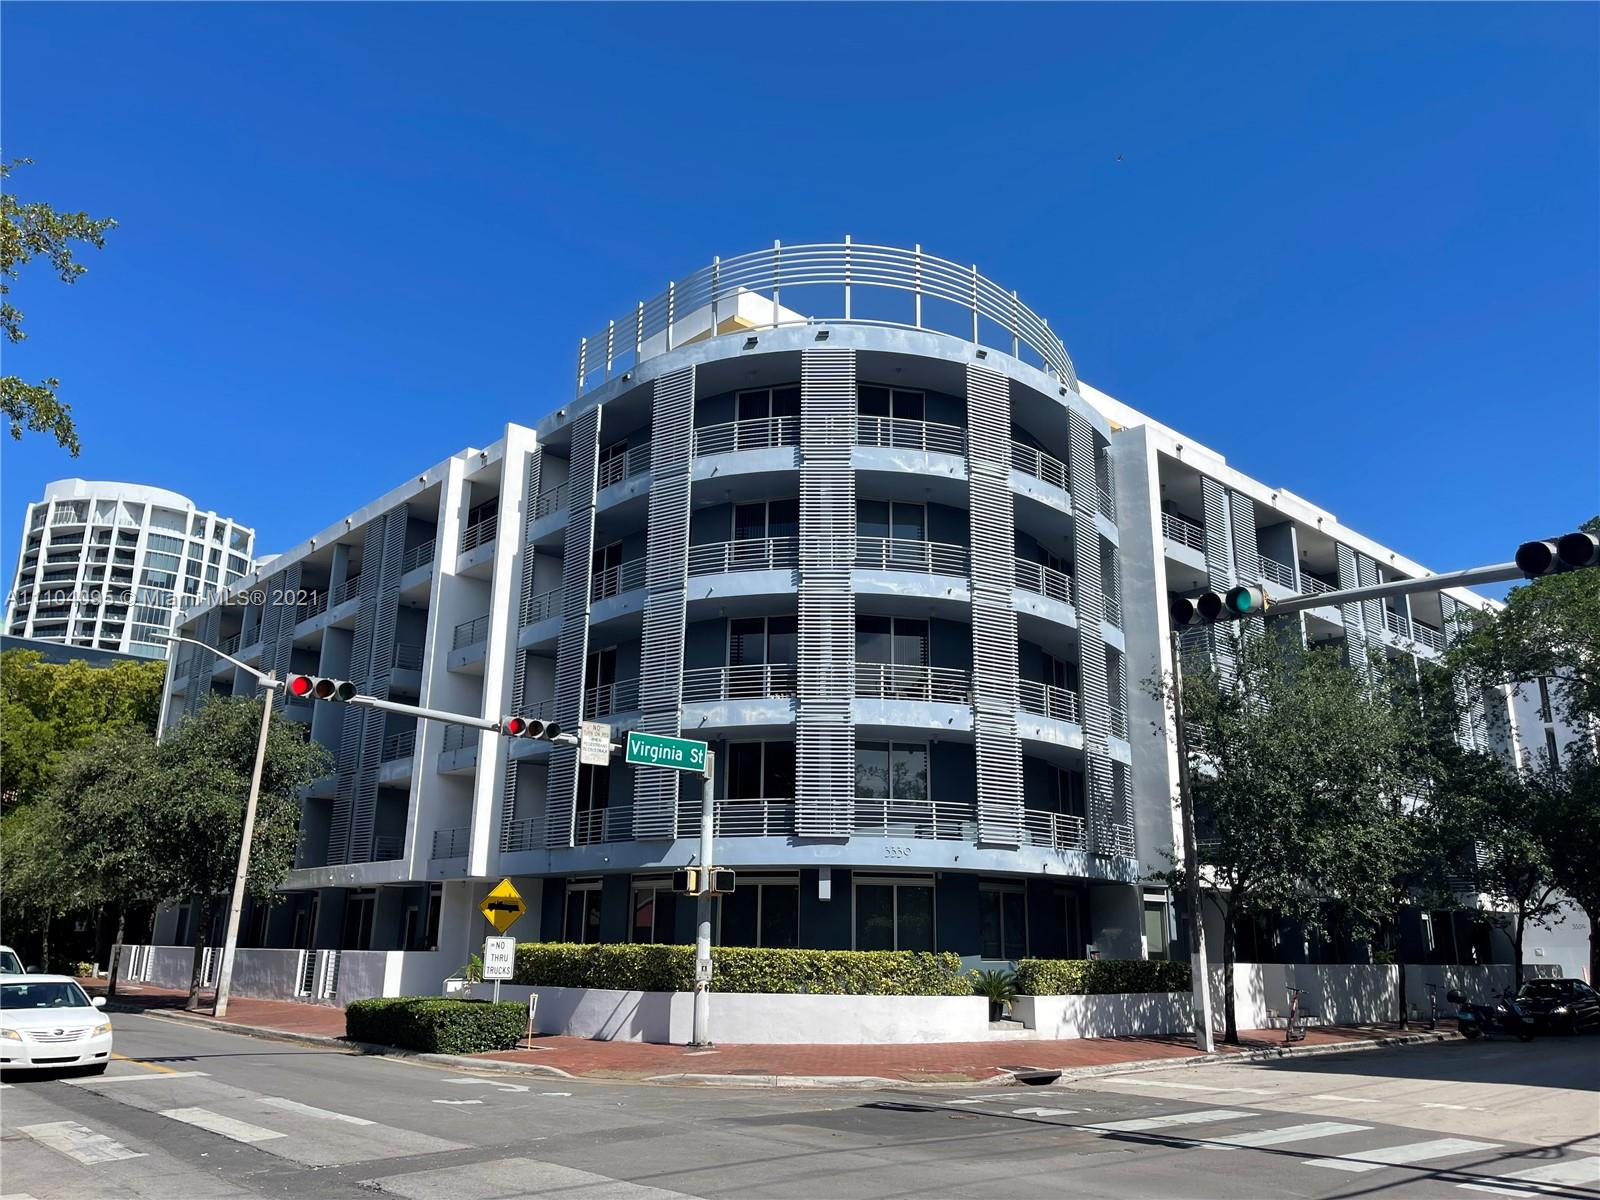 3339  Virginia St #206 For Sale A11104095, FL